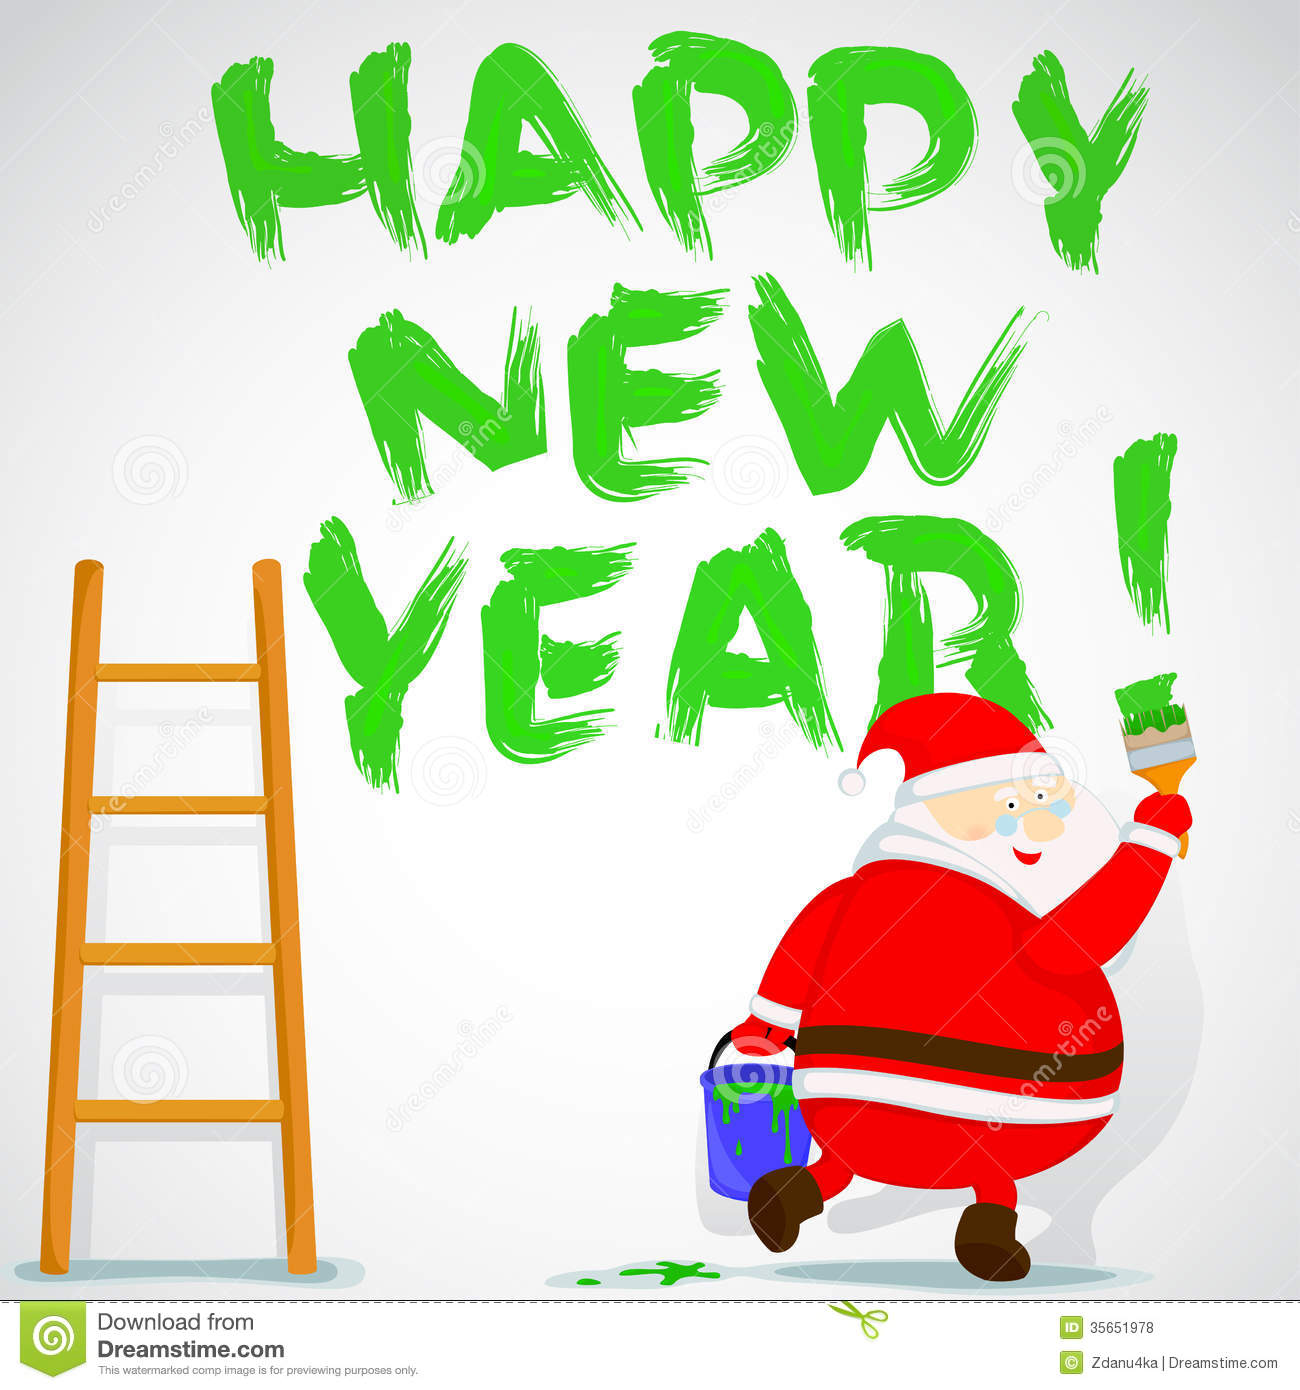 Happy New Year Royalty Free Stock Photos - Image: 35651978